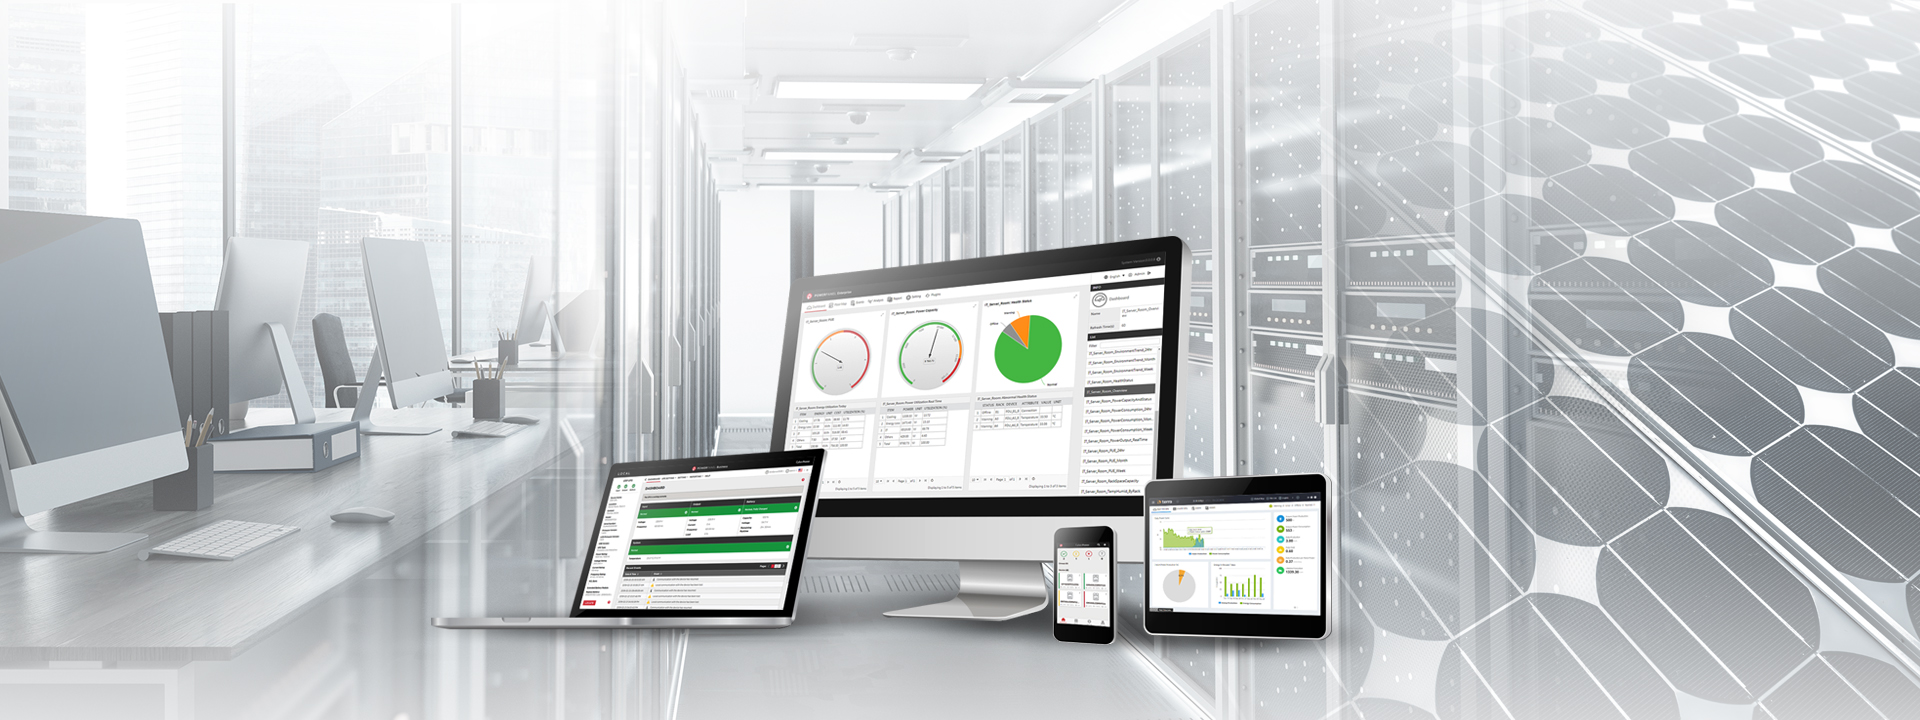 CyberPower's software features intuitive interface for users to easily monitor and control UPS system